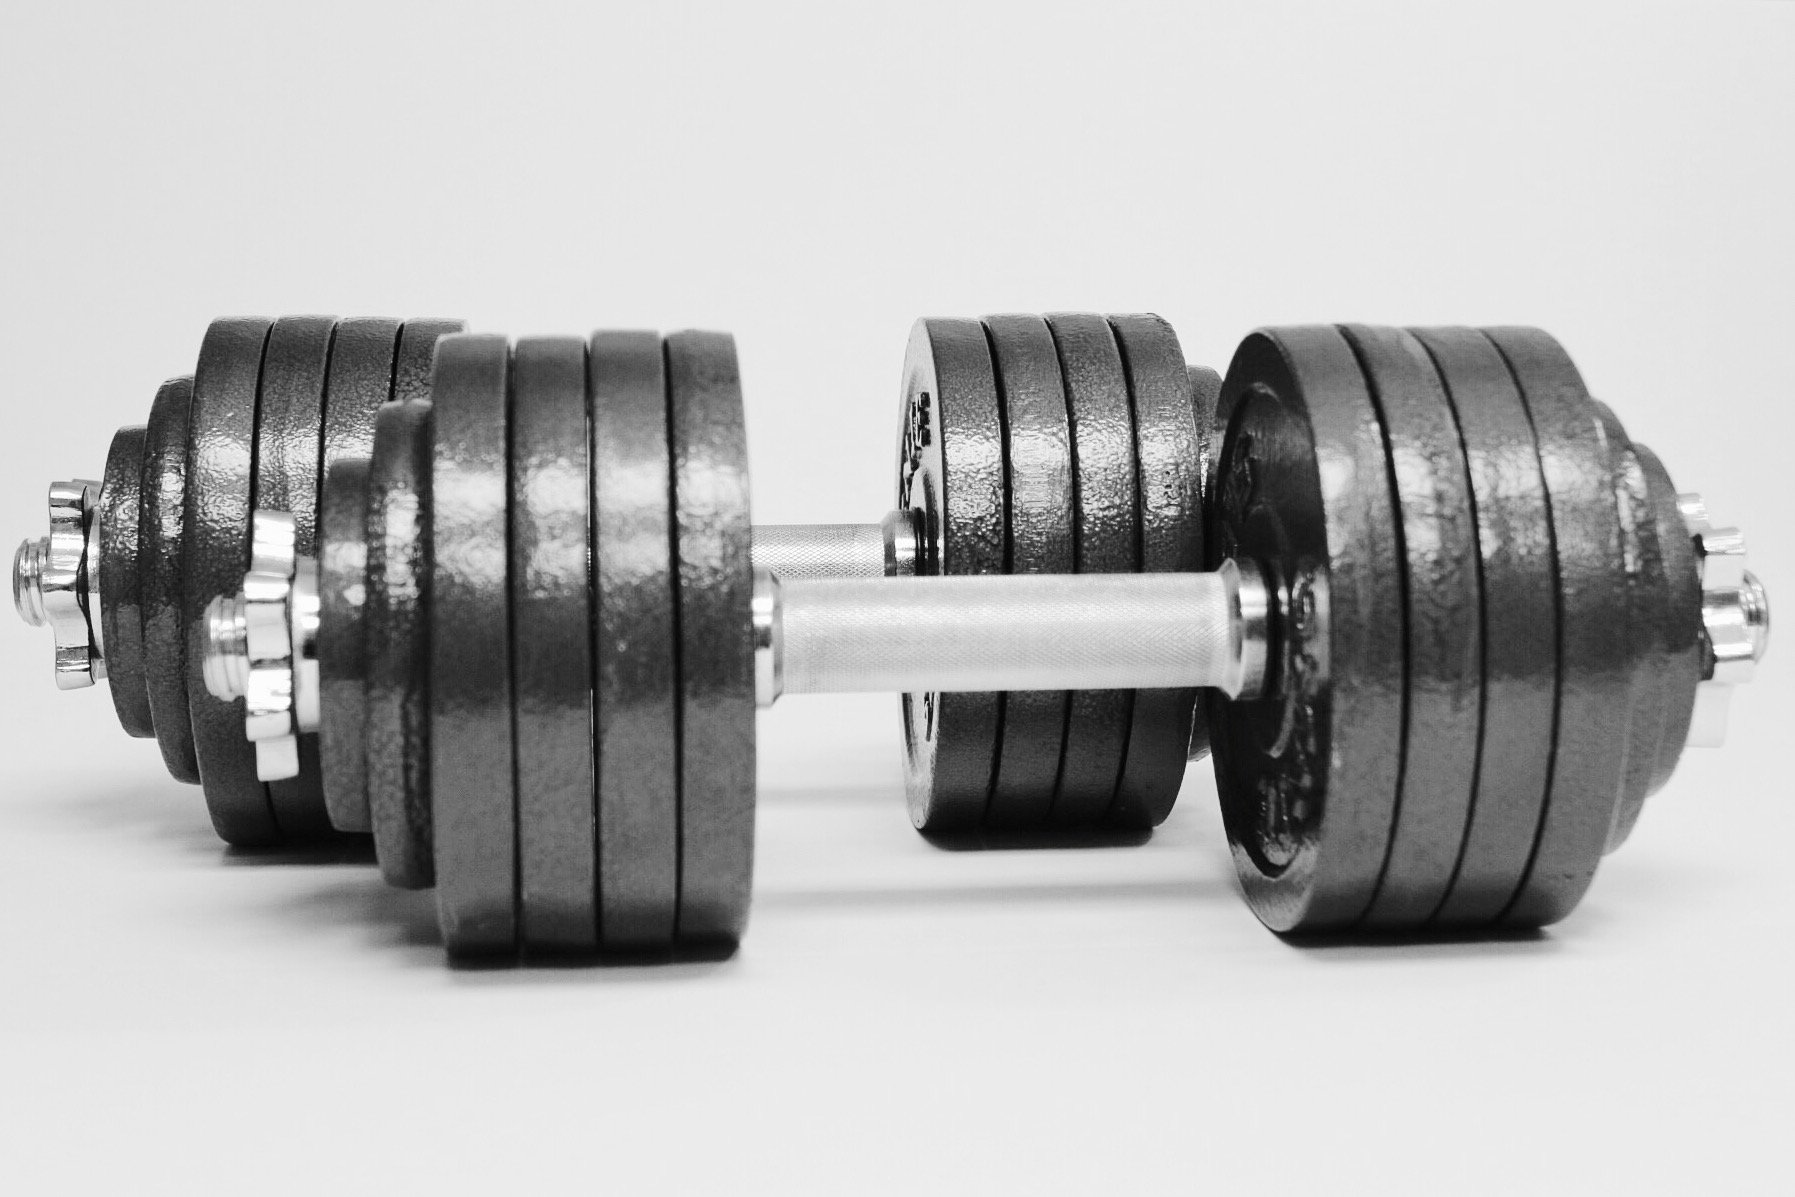 Omnie 105 LBS Adjustable Dumbbells with Gloss Finish and Secure Fit Collars(Pair)